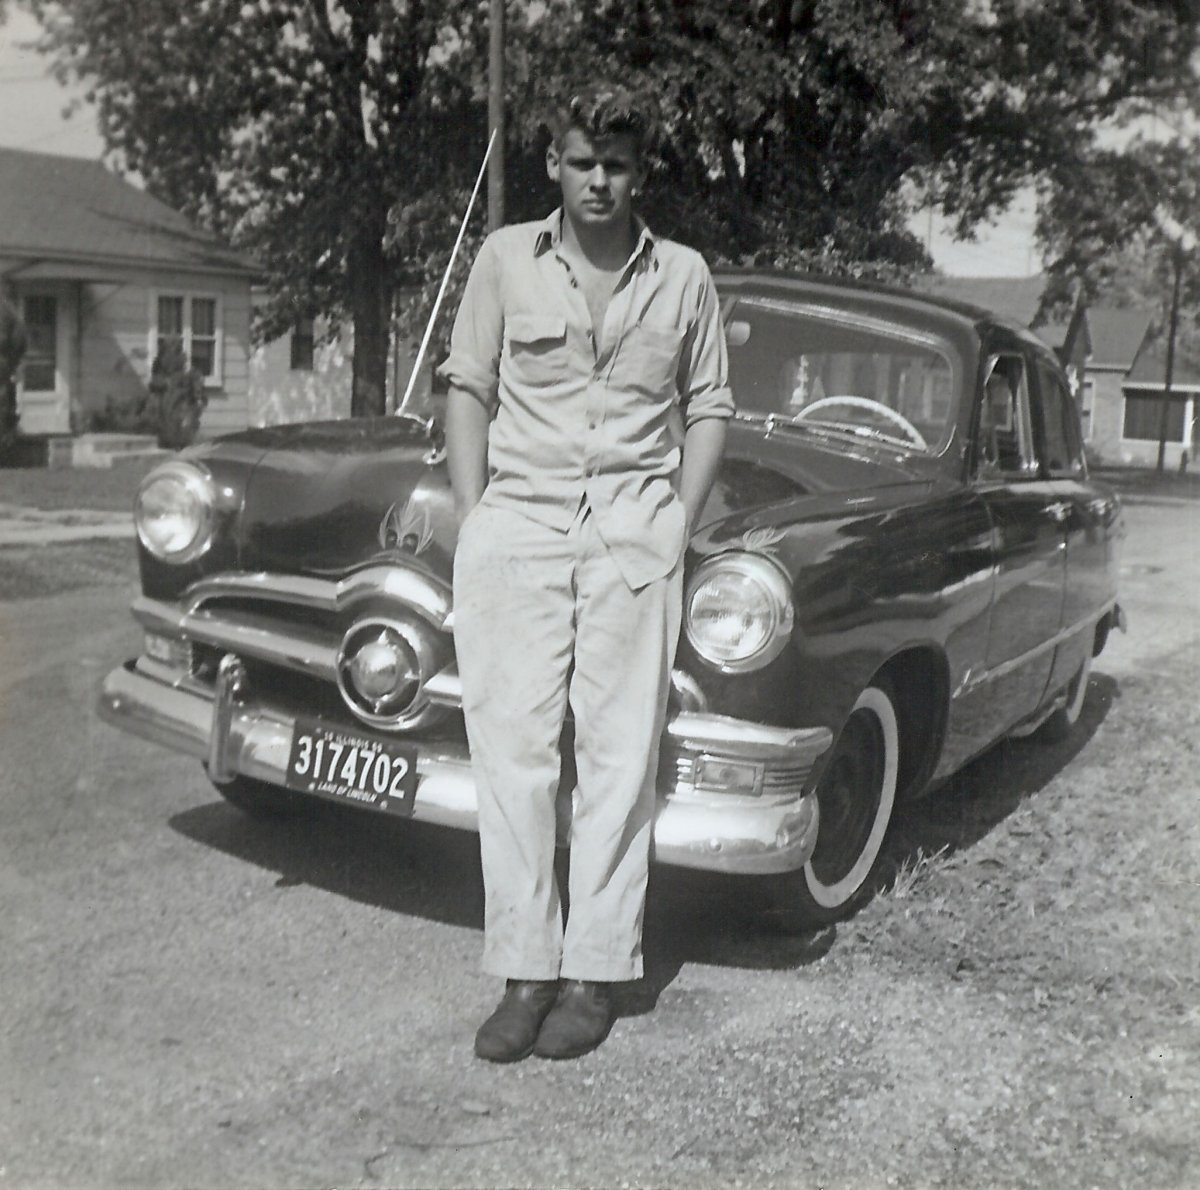 Jim_Illinois 1959.jpg